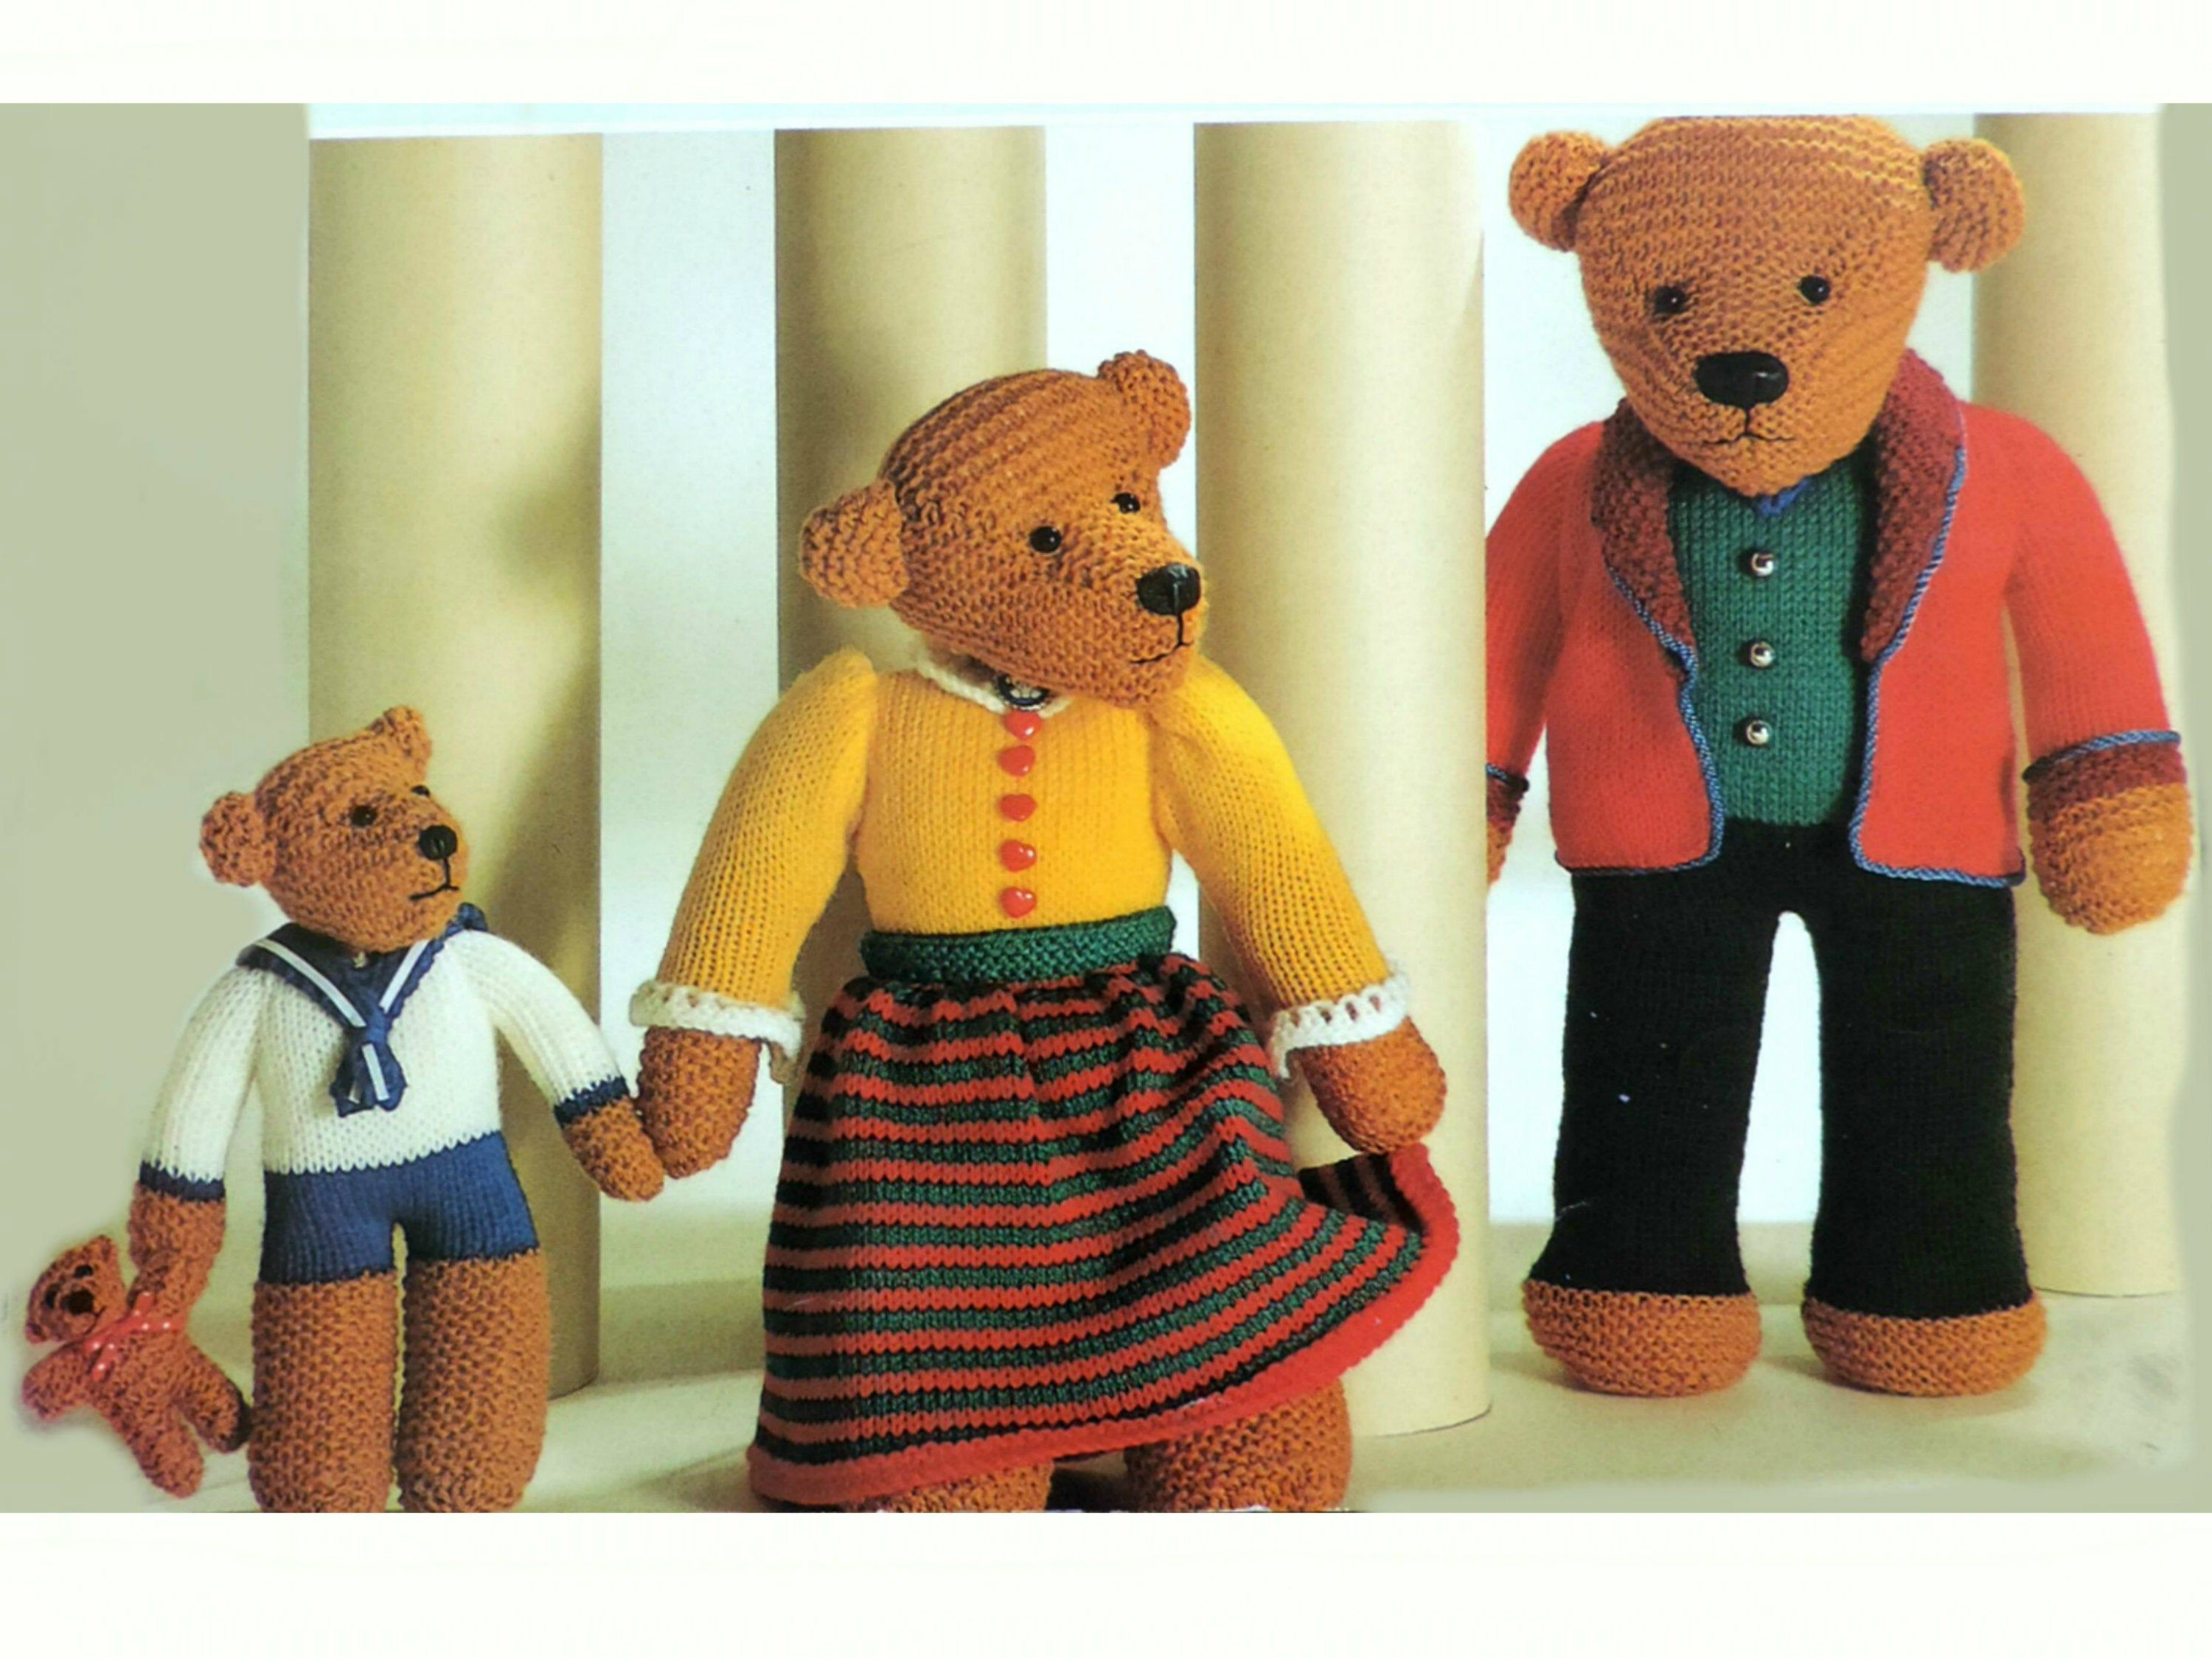 The Three Bears Toys Knitting Pattern Pdf Family Of Teddy Etsy In 2020 Double Knitting Patterns Teddy Bear Knitting Pattern Bear Toy